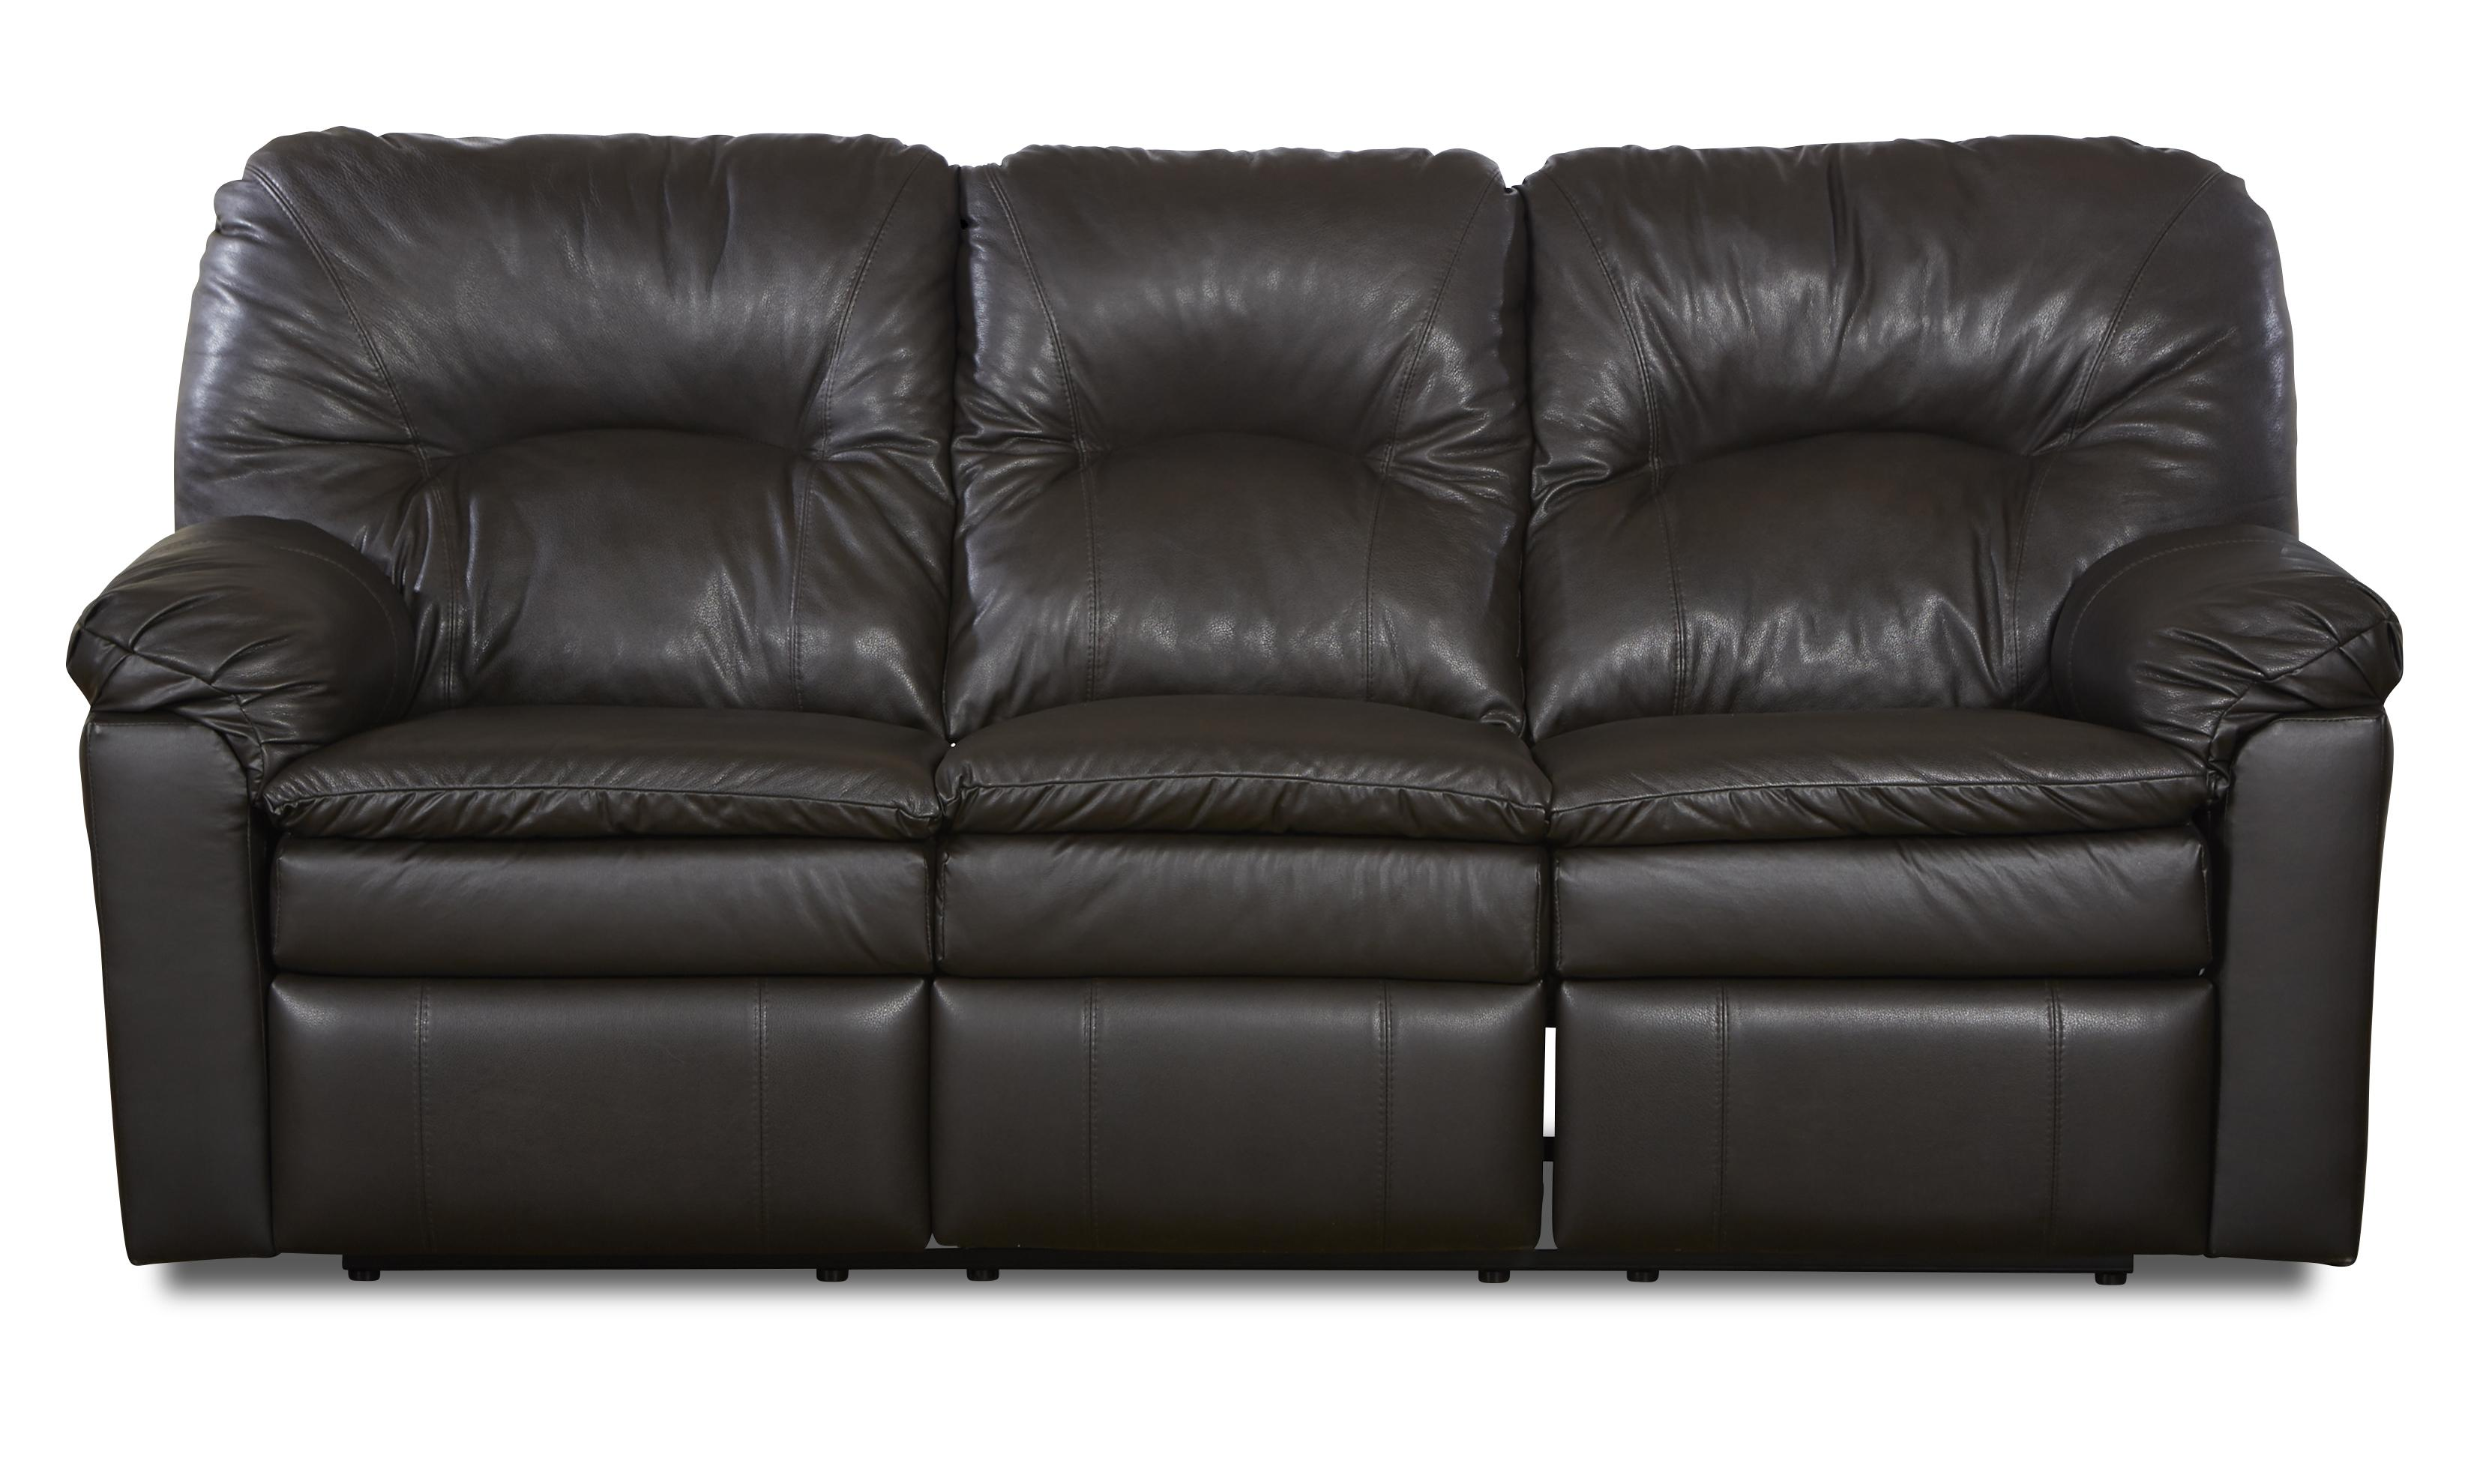 Klaussner Bennington Casual Power Reclining Sofa - Item Number: LV40703 PWRS